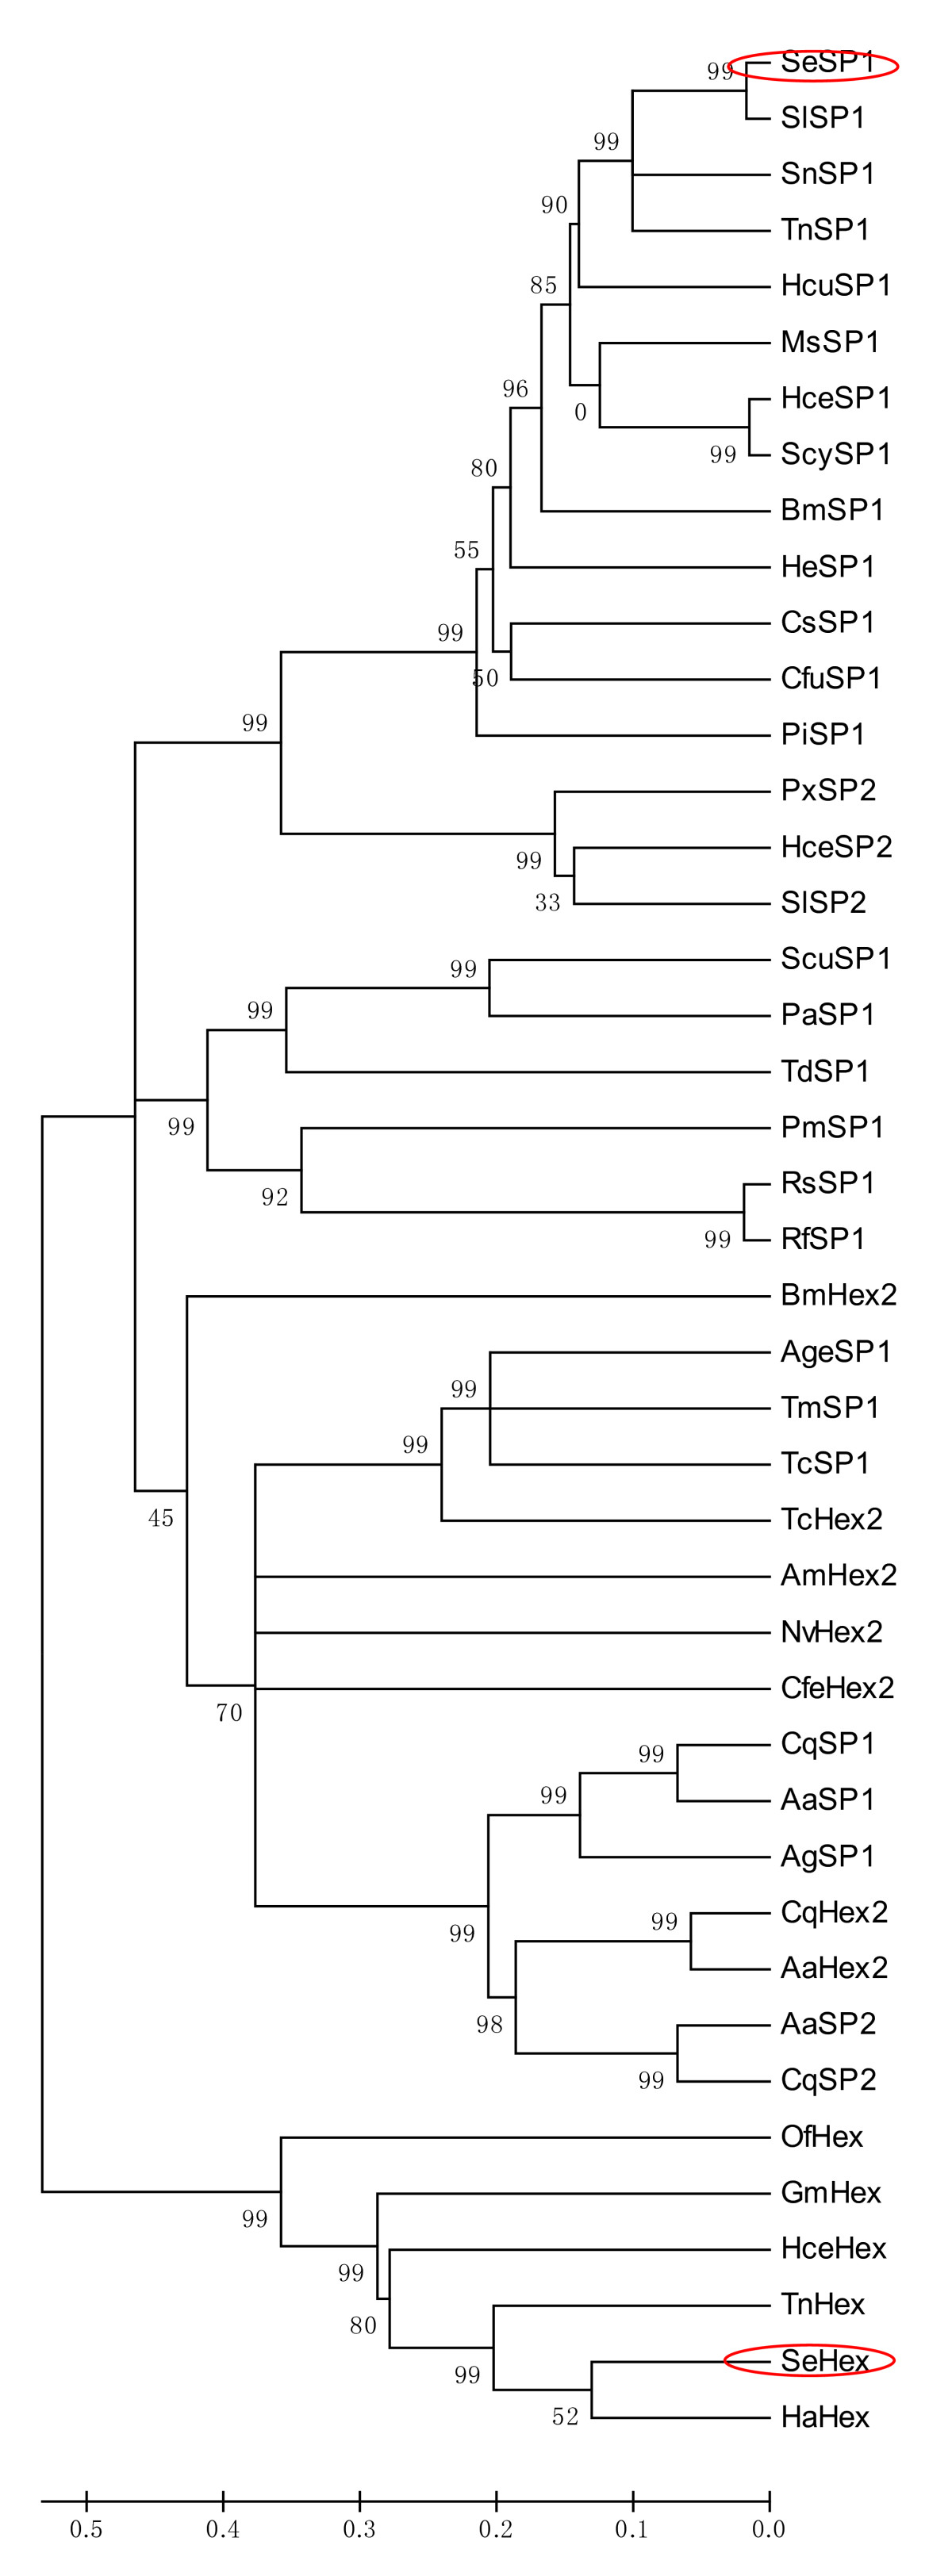 http://static-content.springer.com/image/art%3A10.1186%2F1471-2199-11-65/MediaObjects/12867_2009_Article_546_Fig2_HTML.jpg